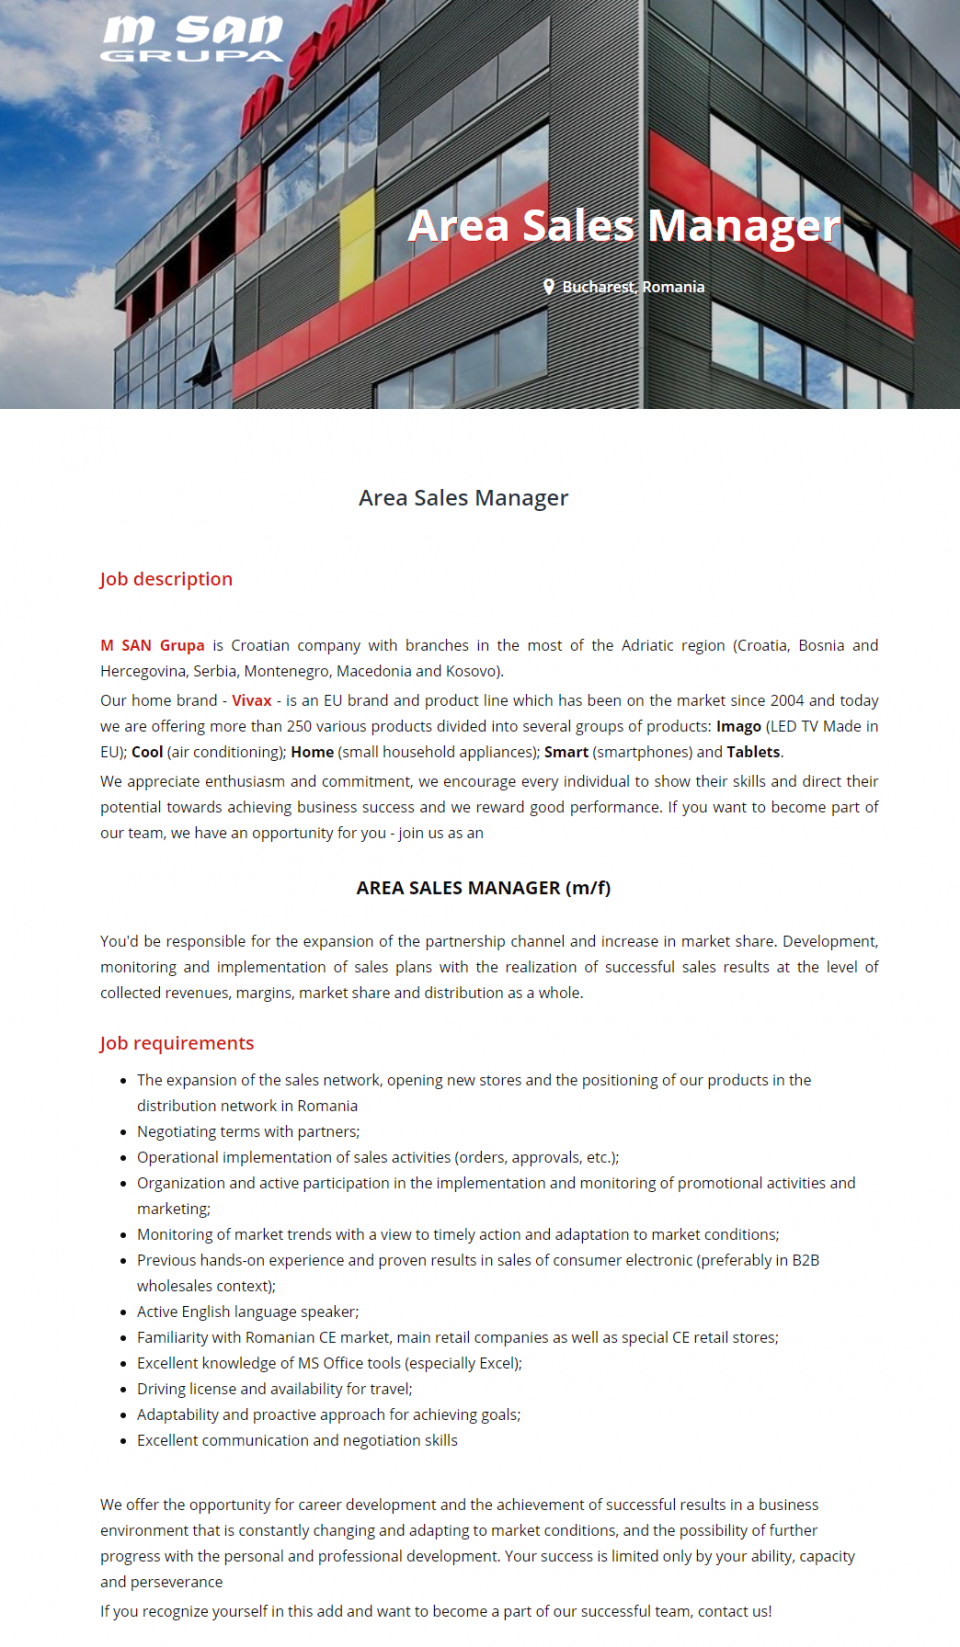 You'd be responsible for the expansion of the partnership channel and increase in market share. Development, monitoring and implementation of sales plans with the realization of successful sales results at the level of collected revenues, margins, market share and distribution as a whole.  Job requirements  The expansion of the sales network, opening new stores and the positioning of our products in the distribution network in Romania Negotiating terms with partners; Operational implementation of sales activities (orders, approvals, etc.); Organization and active participation in the implementation and monitoring of promotional activities and marketing; Monitoring of market trends with a view to timely action and adaptation to market conditions; Previous hands-on experience and proven results in sales of consumer electronic (preferably in B2B wholesales context); Active English language speaker; Familiarity with Romanian CE market, main retail companies as well as special CE retail stores; Excellent knowledge of MS Office tools (especially Excel); Driving license and availability for travel; Adaptability and proactive approach for achieving goals; Excellent communication and negotiation skills   We offer the opportunity for career development and the achievement of successful results in a business environment that is constantly changing and adapting to market conditions, and the possibility of further progress with the personal and professional development. Your success is limited only by your ability, capacity and perseverance  If you recognize yourself in this add and want to become a part of our successful team, contact us! M SAN Grupa is Croatian company with branches in the most of the Adriatic region (Croatia, Bosnia and Hercegovina, Serbia, Montenegro, Macedonia and Kosovo).  Our home brand - Vivax - is an EU brand and product line which has been on the market since 2004 and today we are offering more than 250 various products divided into several groups of p